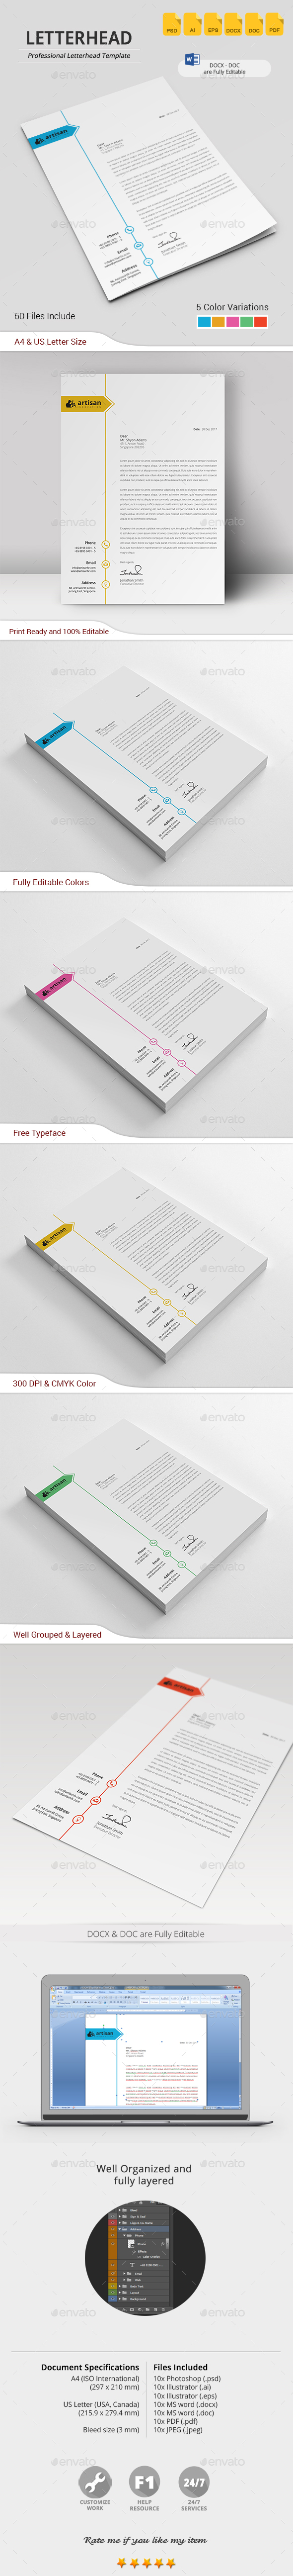 Letterhead | Stationery